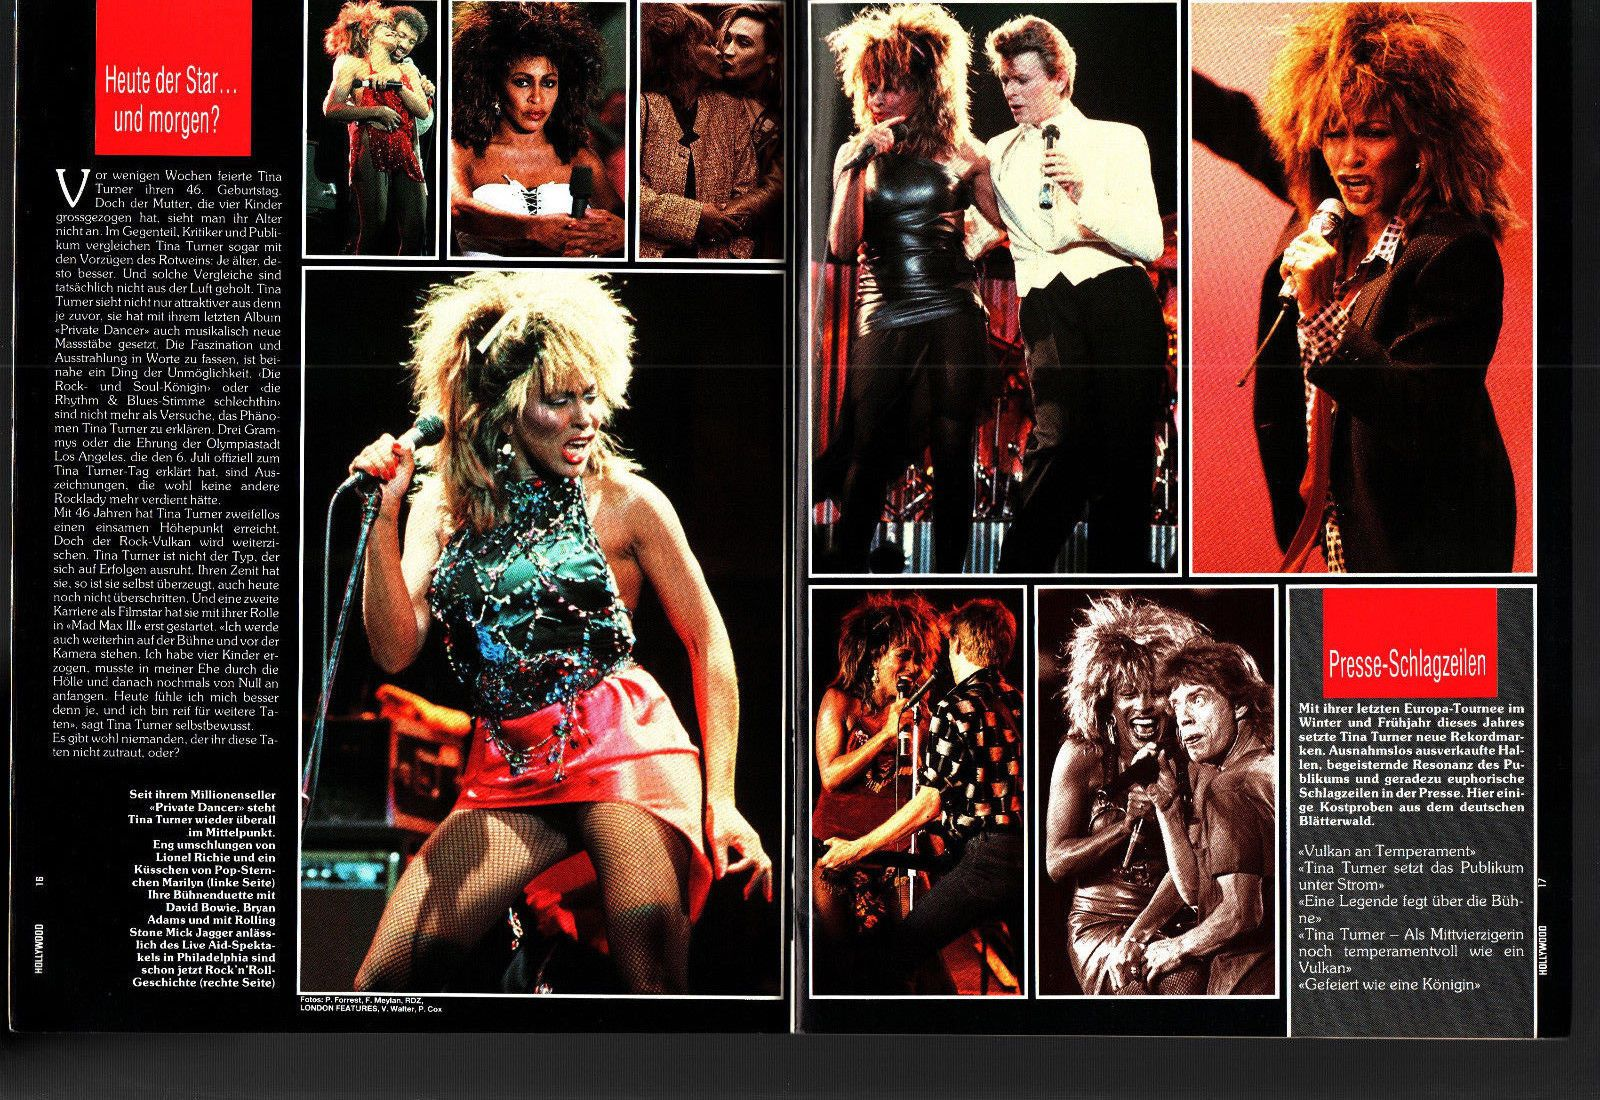 Hollywood 1 1986 Tina Turner Quatermain David Lee Roth Ebay David Lee Roth Tina Turner David Lee